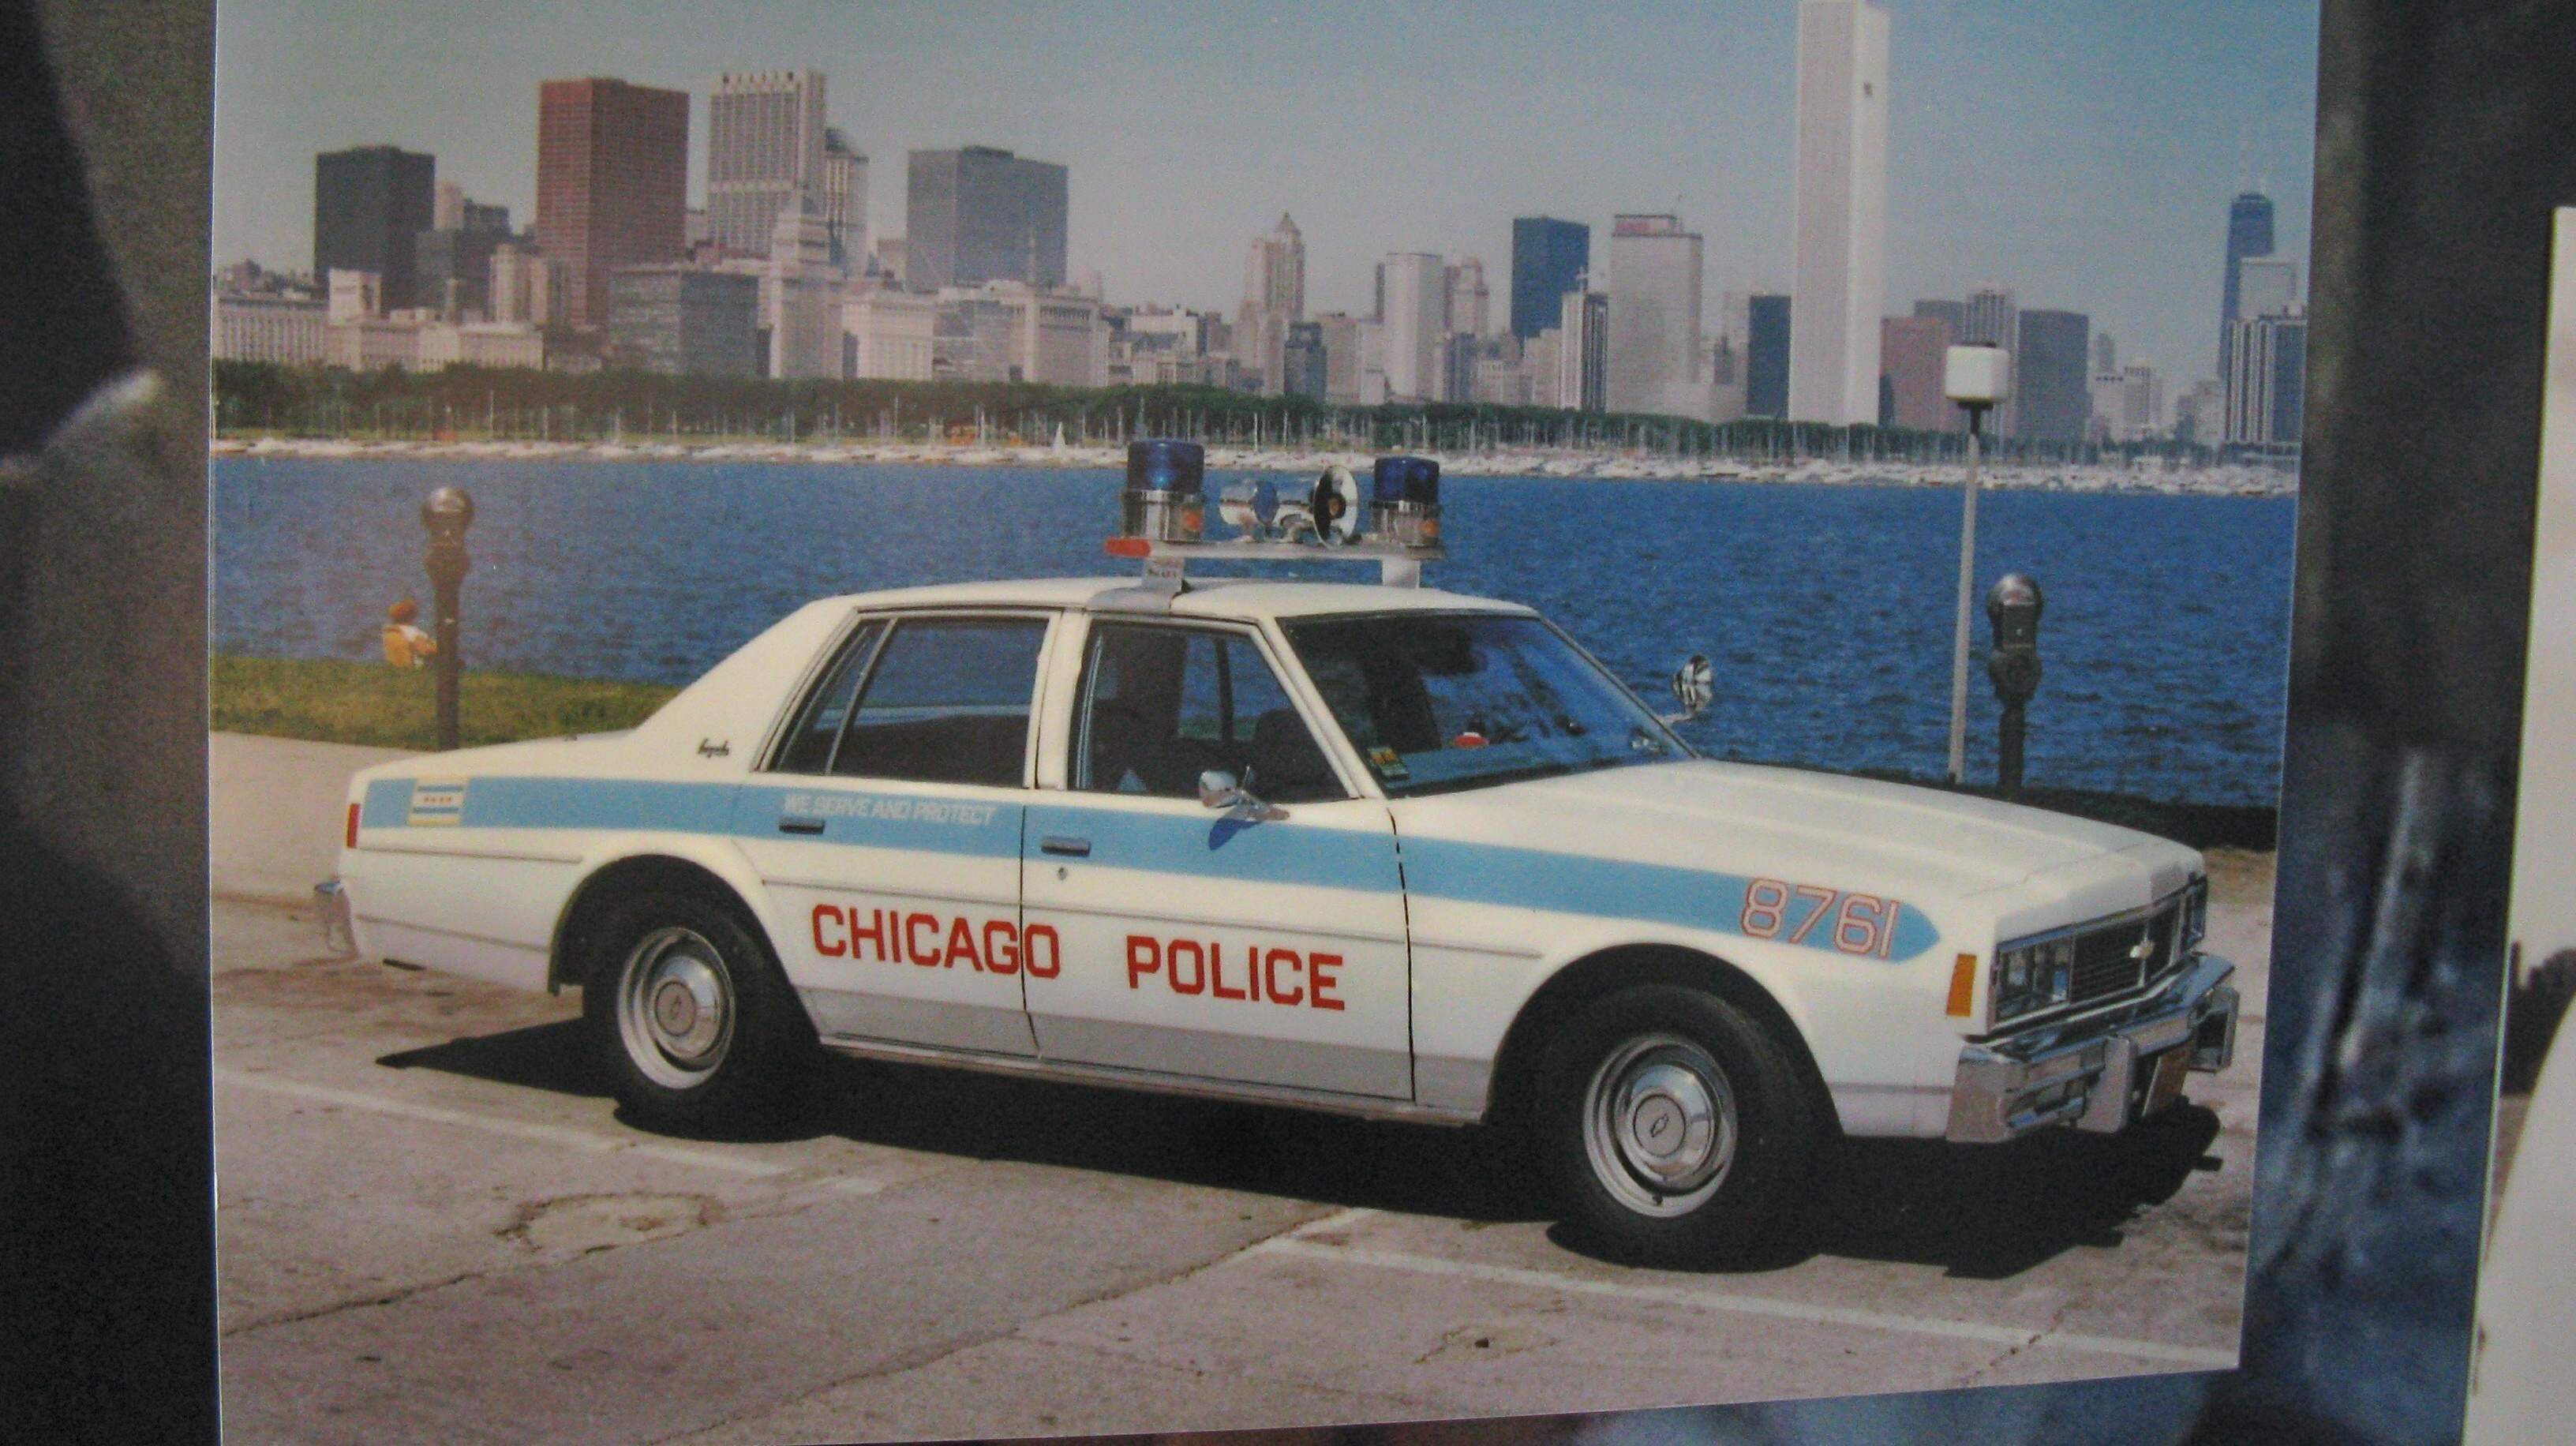 copcar dot com - The home of the American Police Car ...  |1970 Police Cars Florida